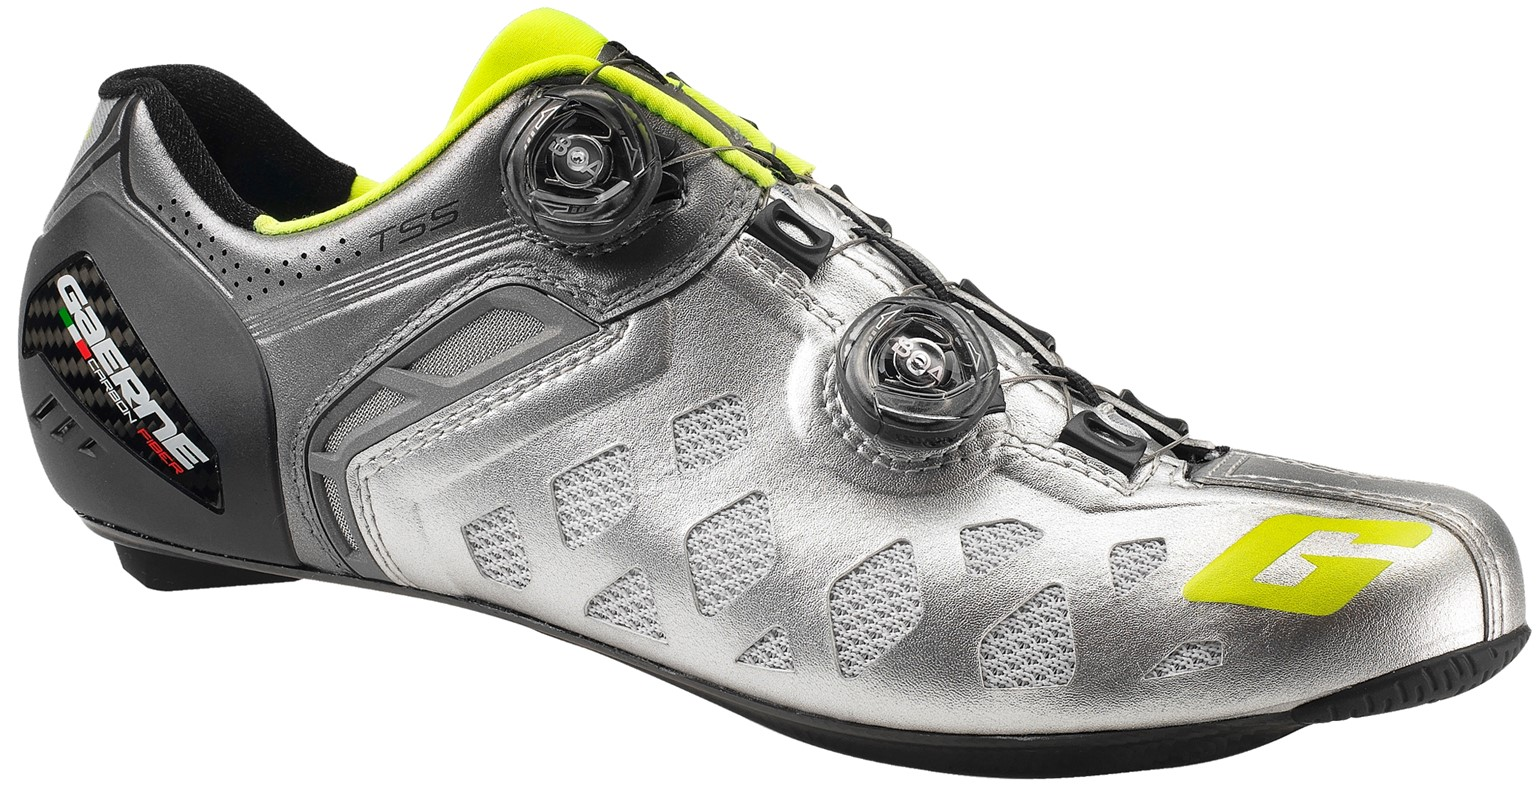 Gaerne Carbon Stilo Summer SPD-SL Road Shoes | Shoes and overlays